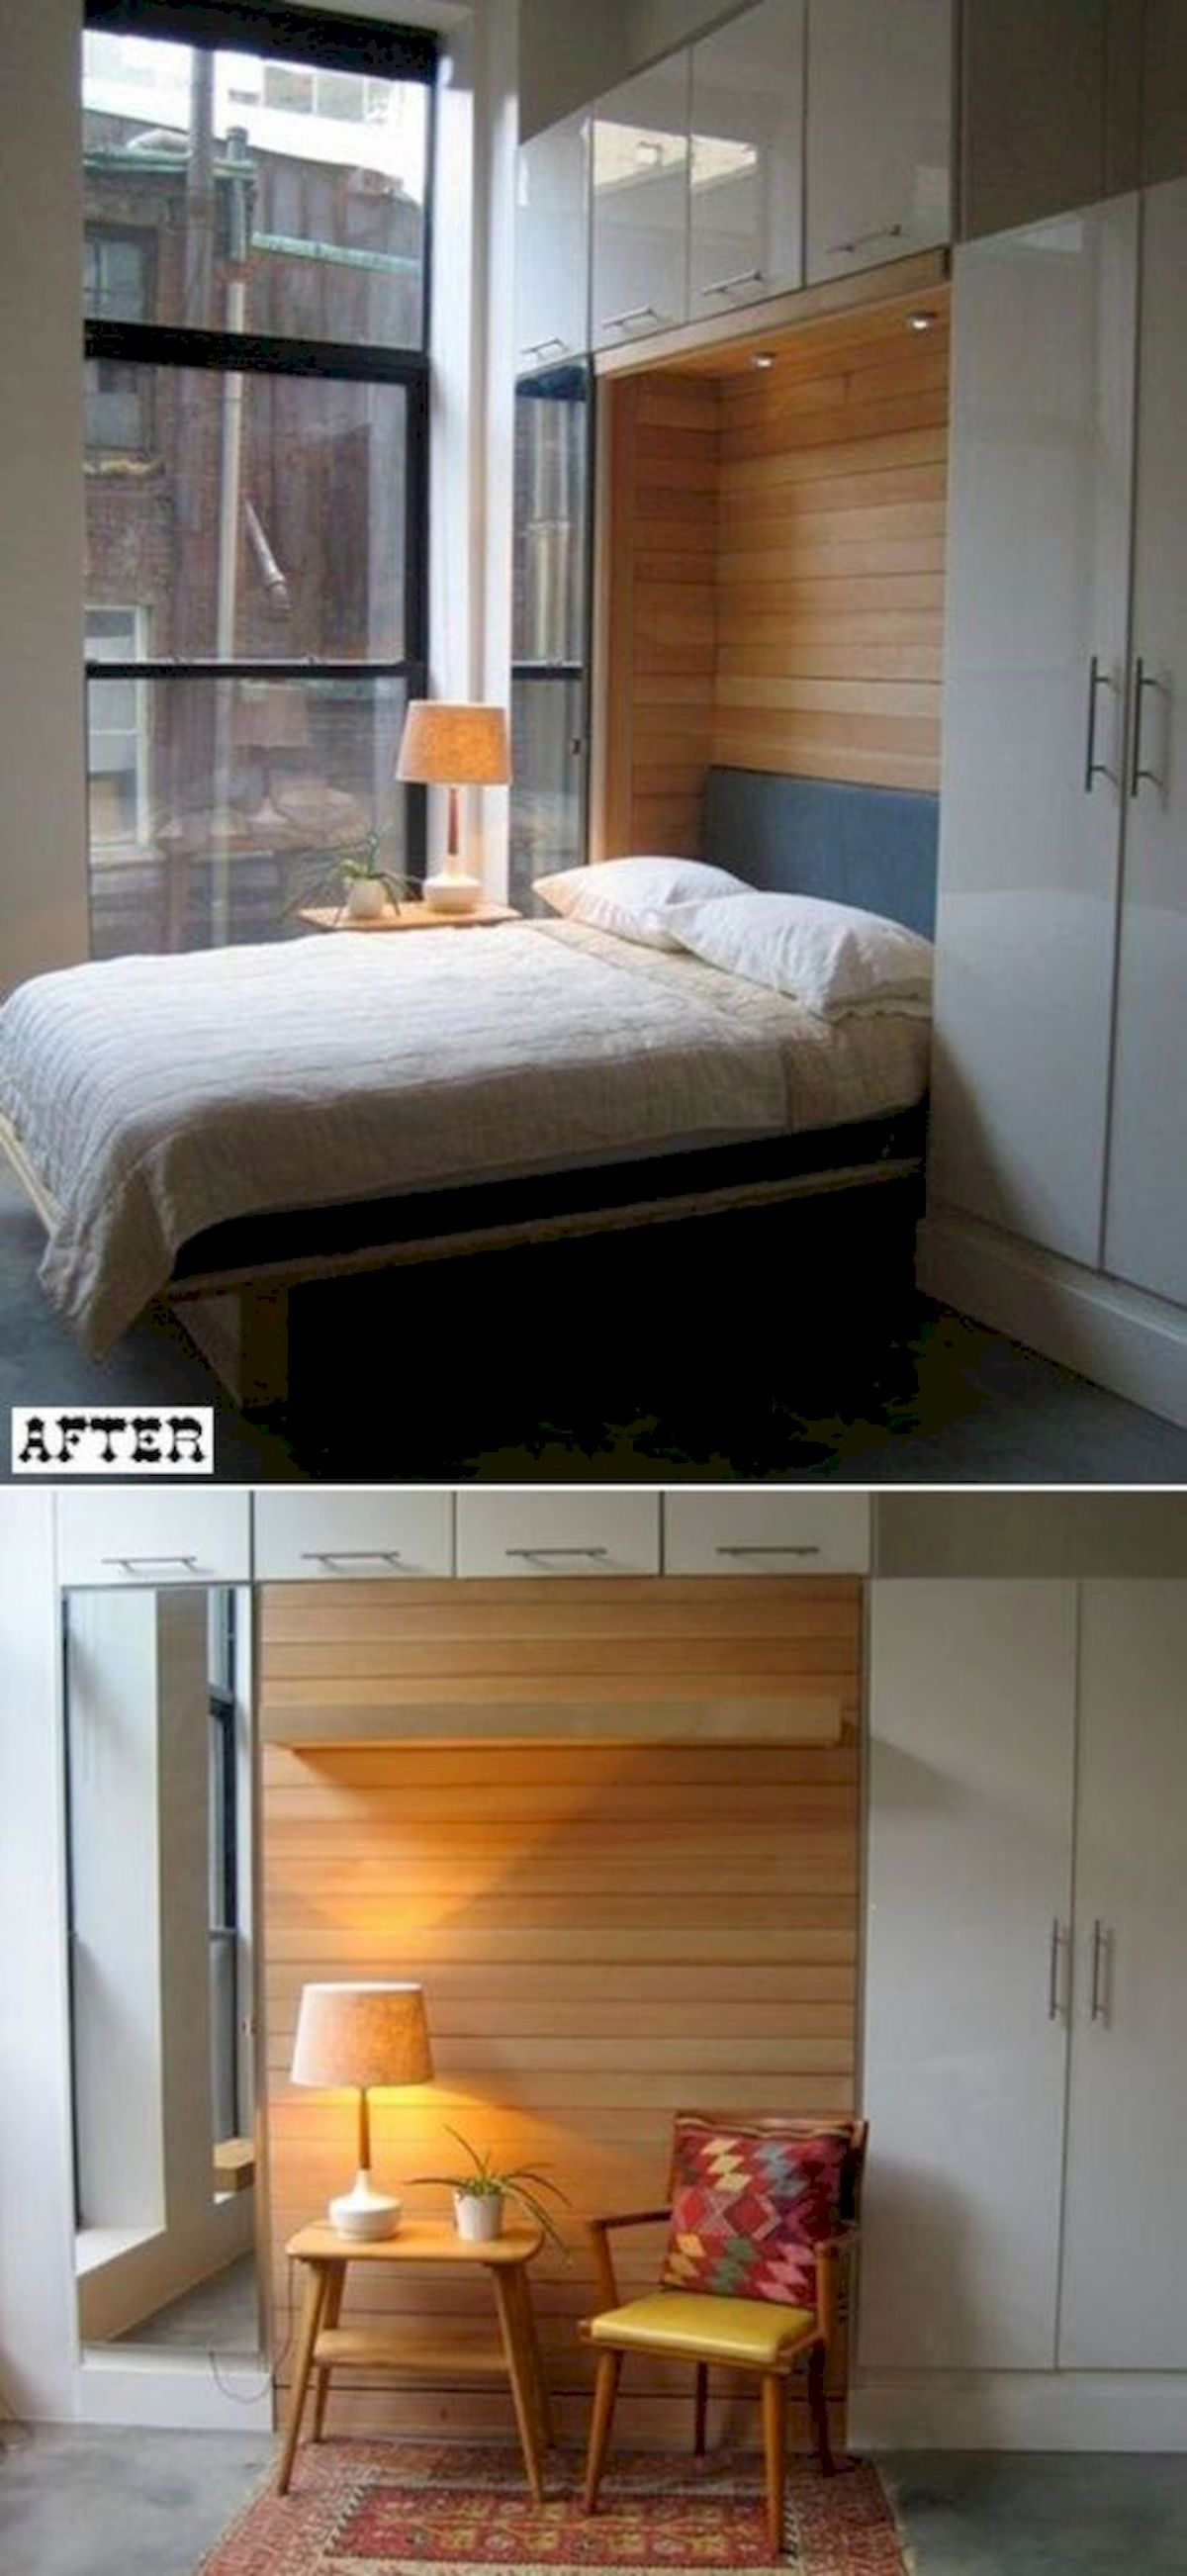 60 Brilliant Space Saving Ideas For Small Bedroom (22)